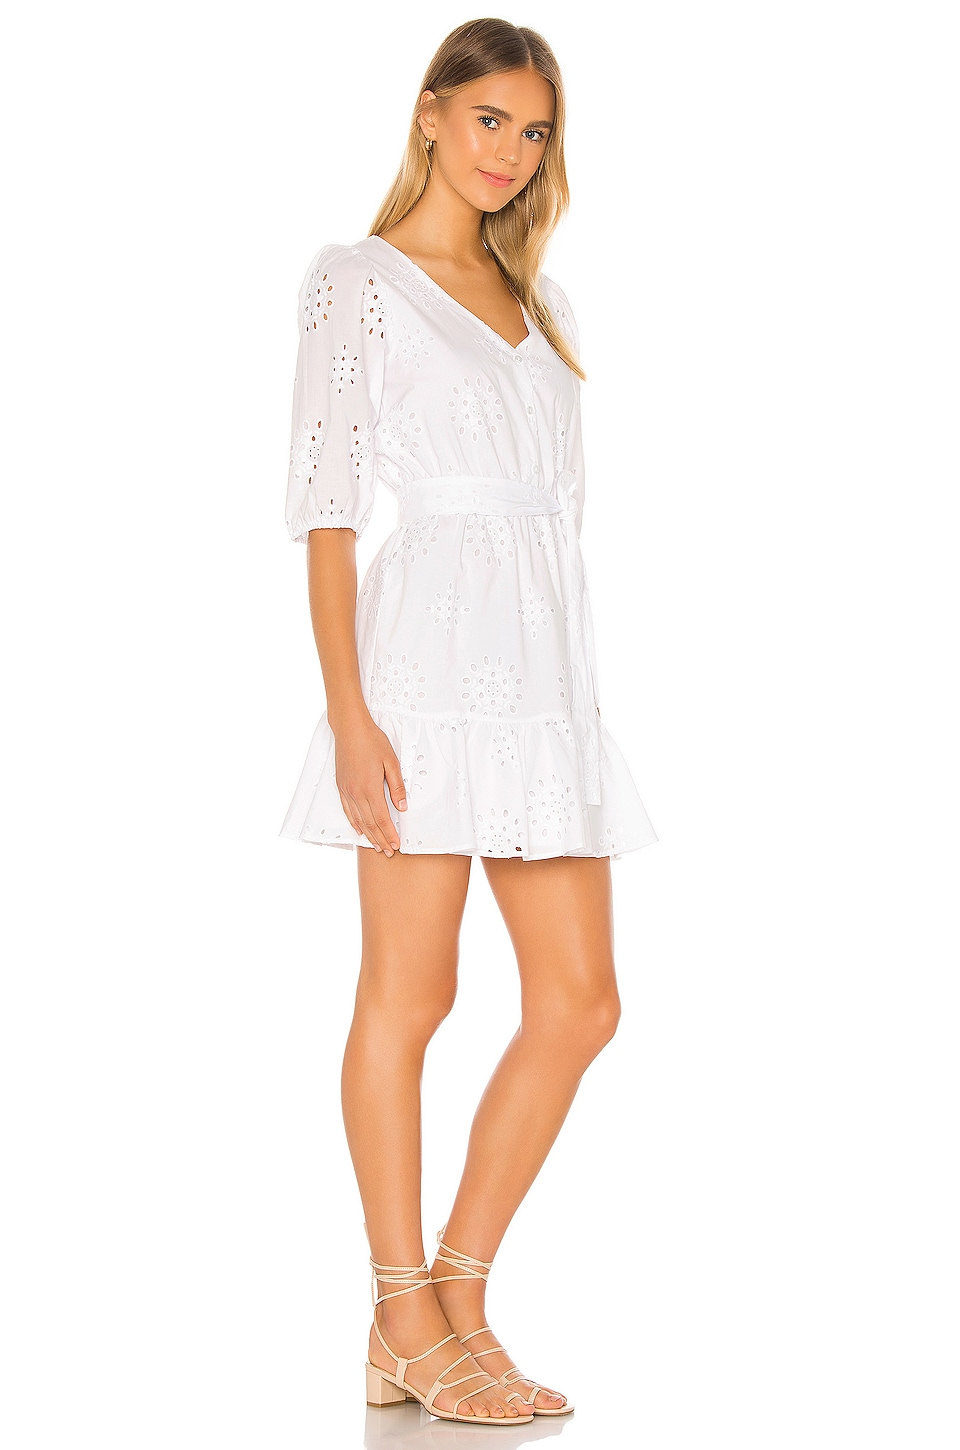 Cotton Eyelet Tie Waist Dress, view 2, click to view large image.